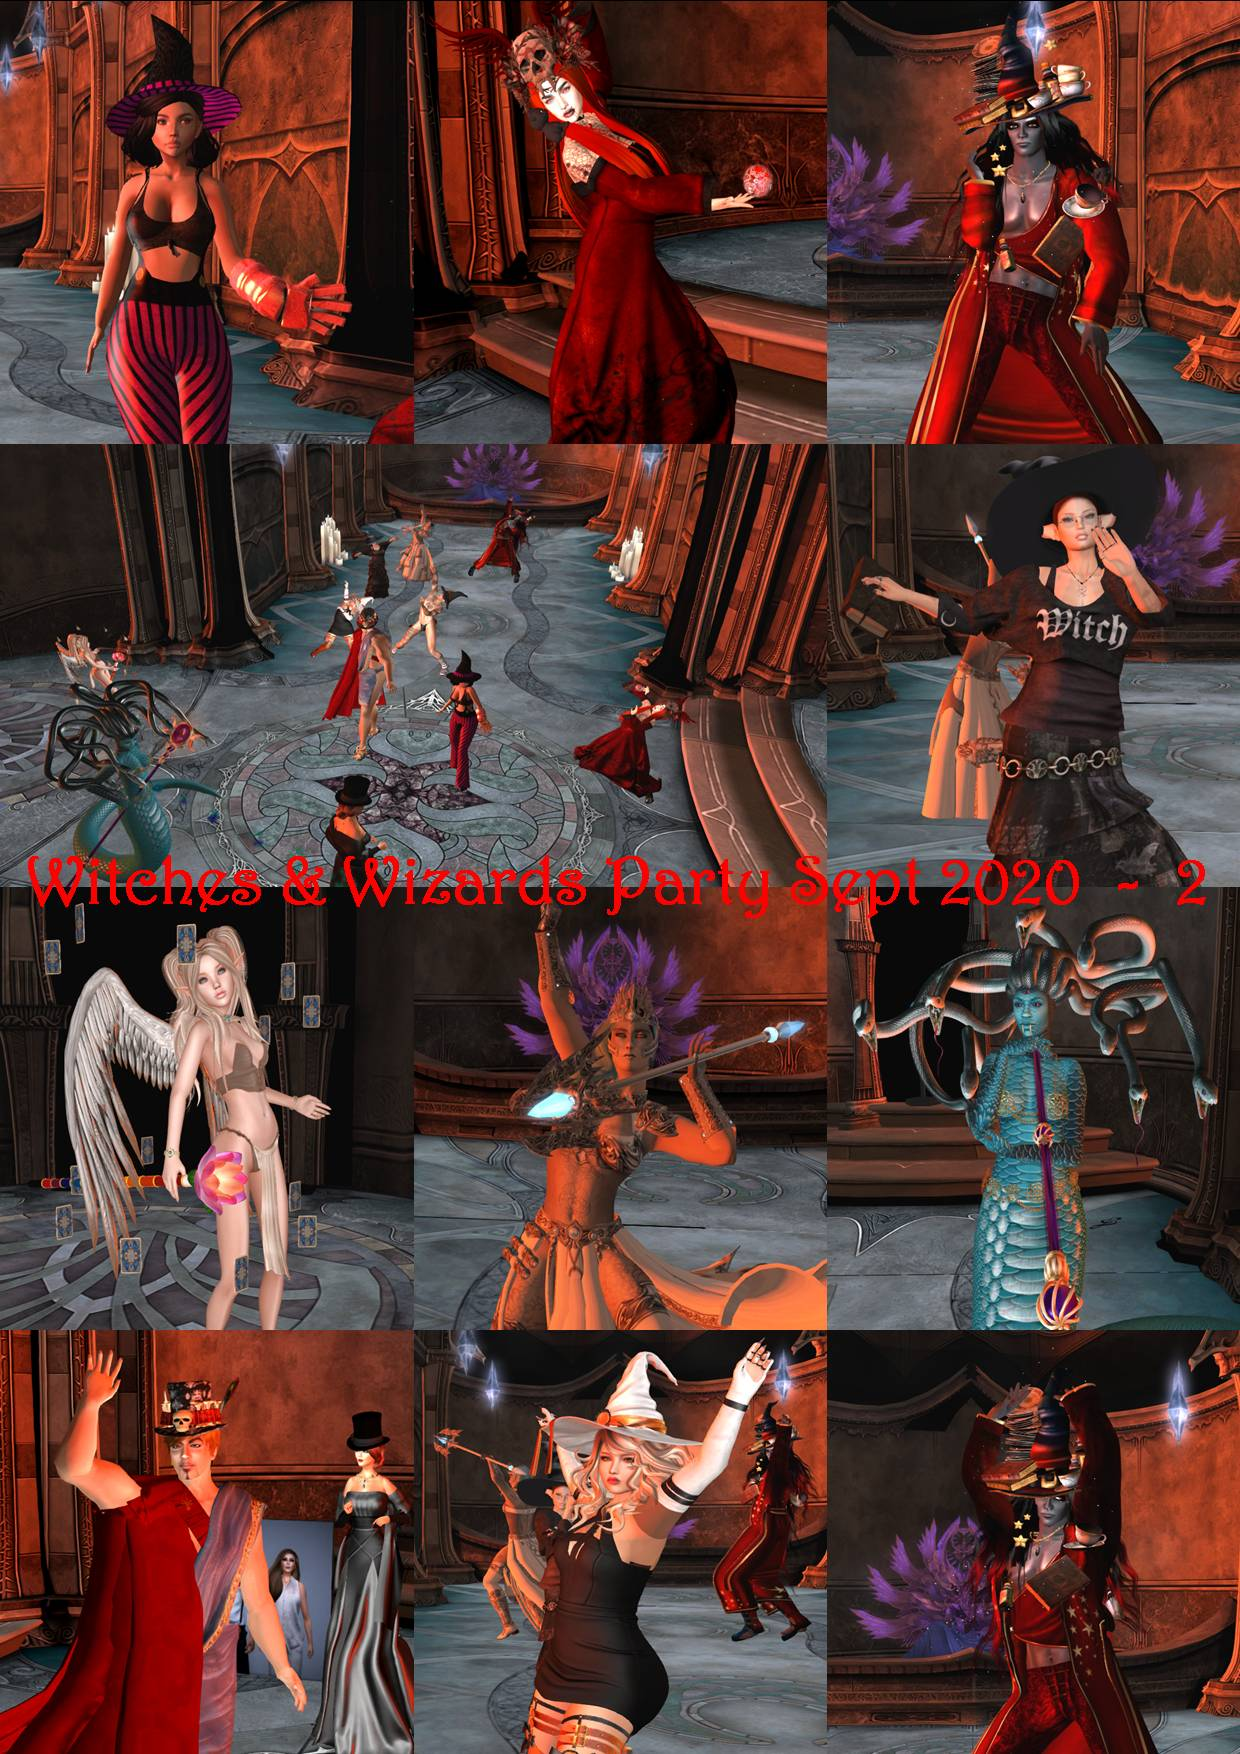 WITCHES & WIZARDS PARTY COLLAGE SEPT 2020 - 2